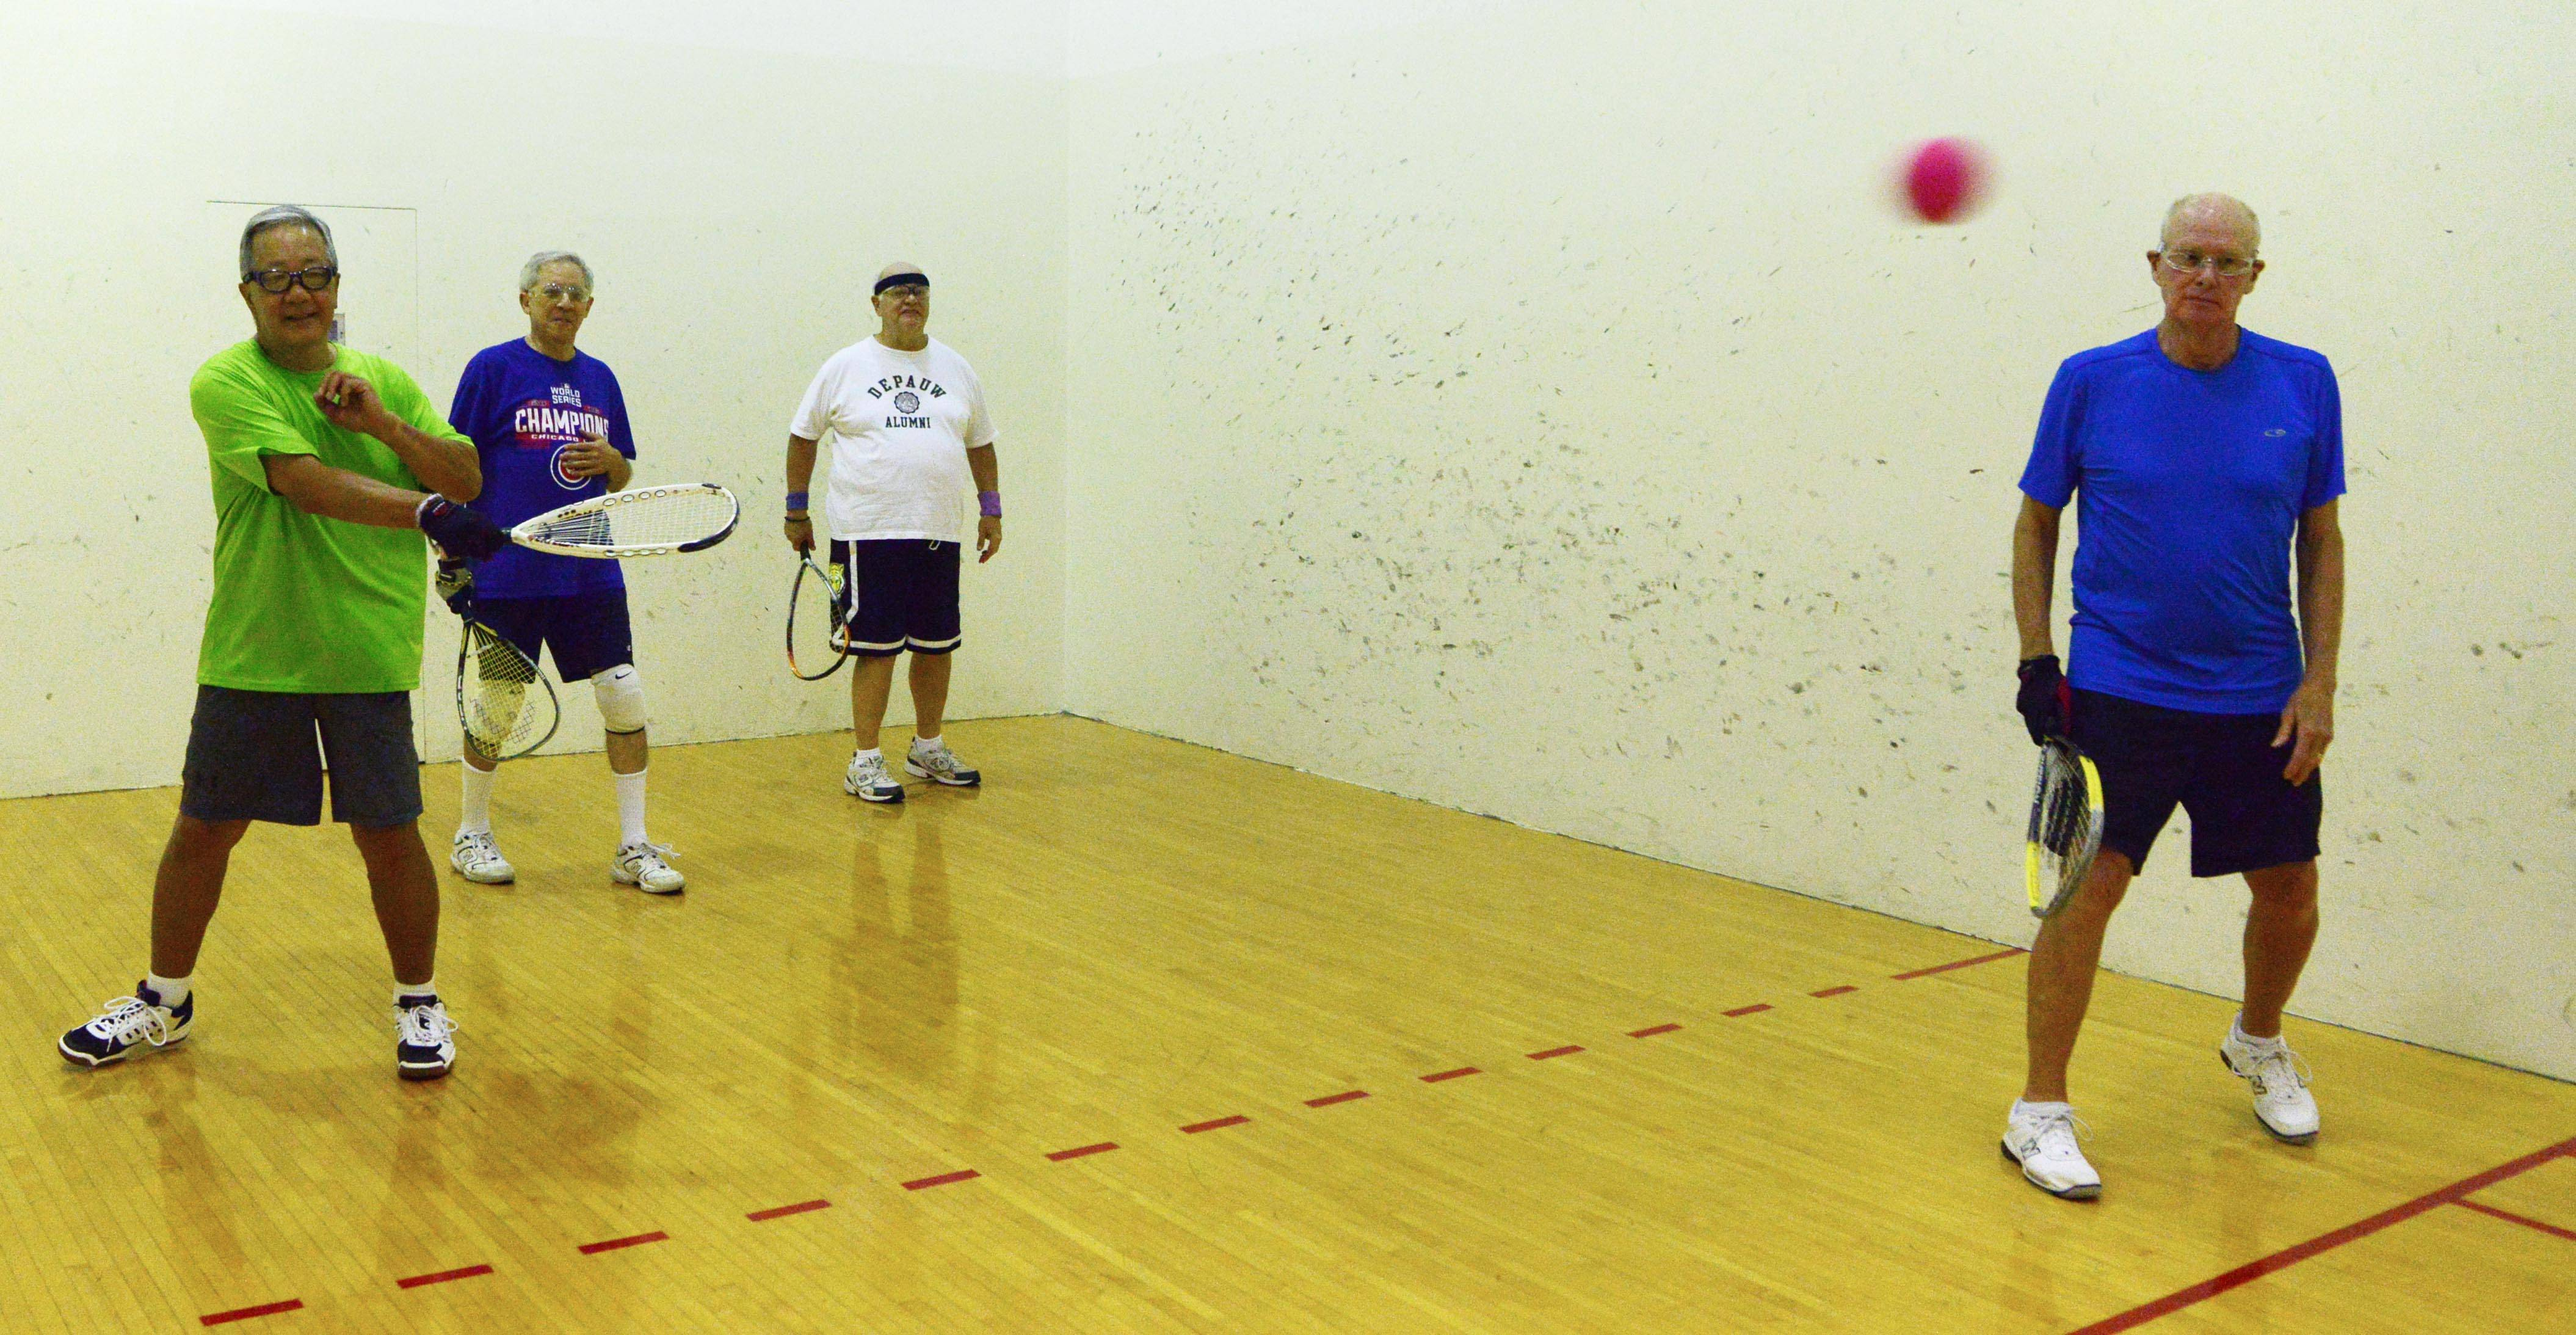 From left, George Shibayana of Arlington Heights, Rich Tepperman of Schaumburg, Len Hochmuth of Mount Prospect and Steve Pierce of South Barrington play racquetball together once a week at the Forest View Racquet and Fitness Club in Arlington Heights. They are part of a group that has been playing together for 40 years.